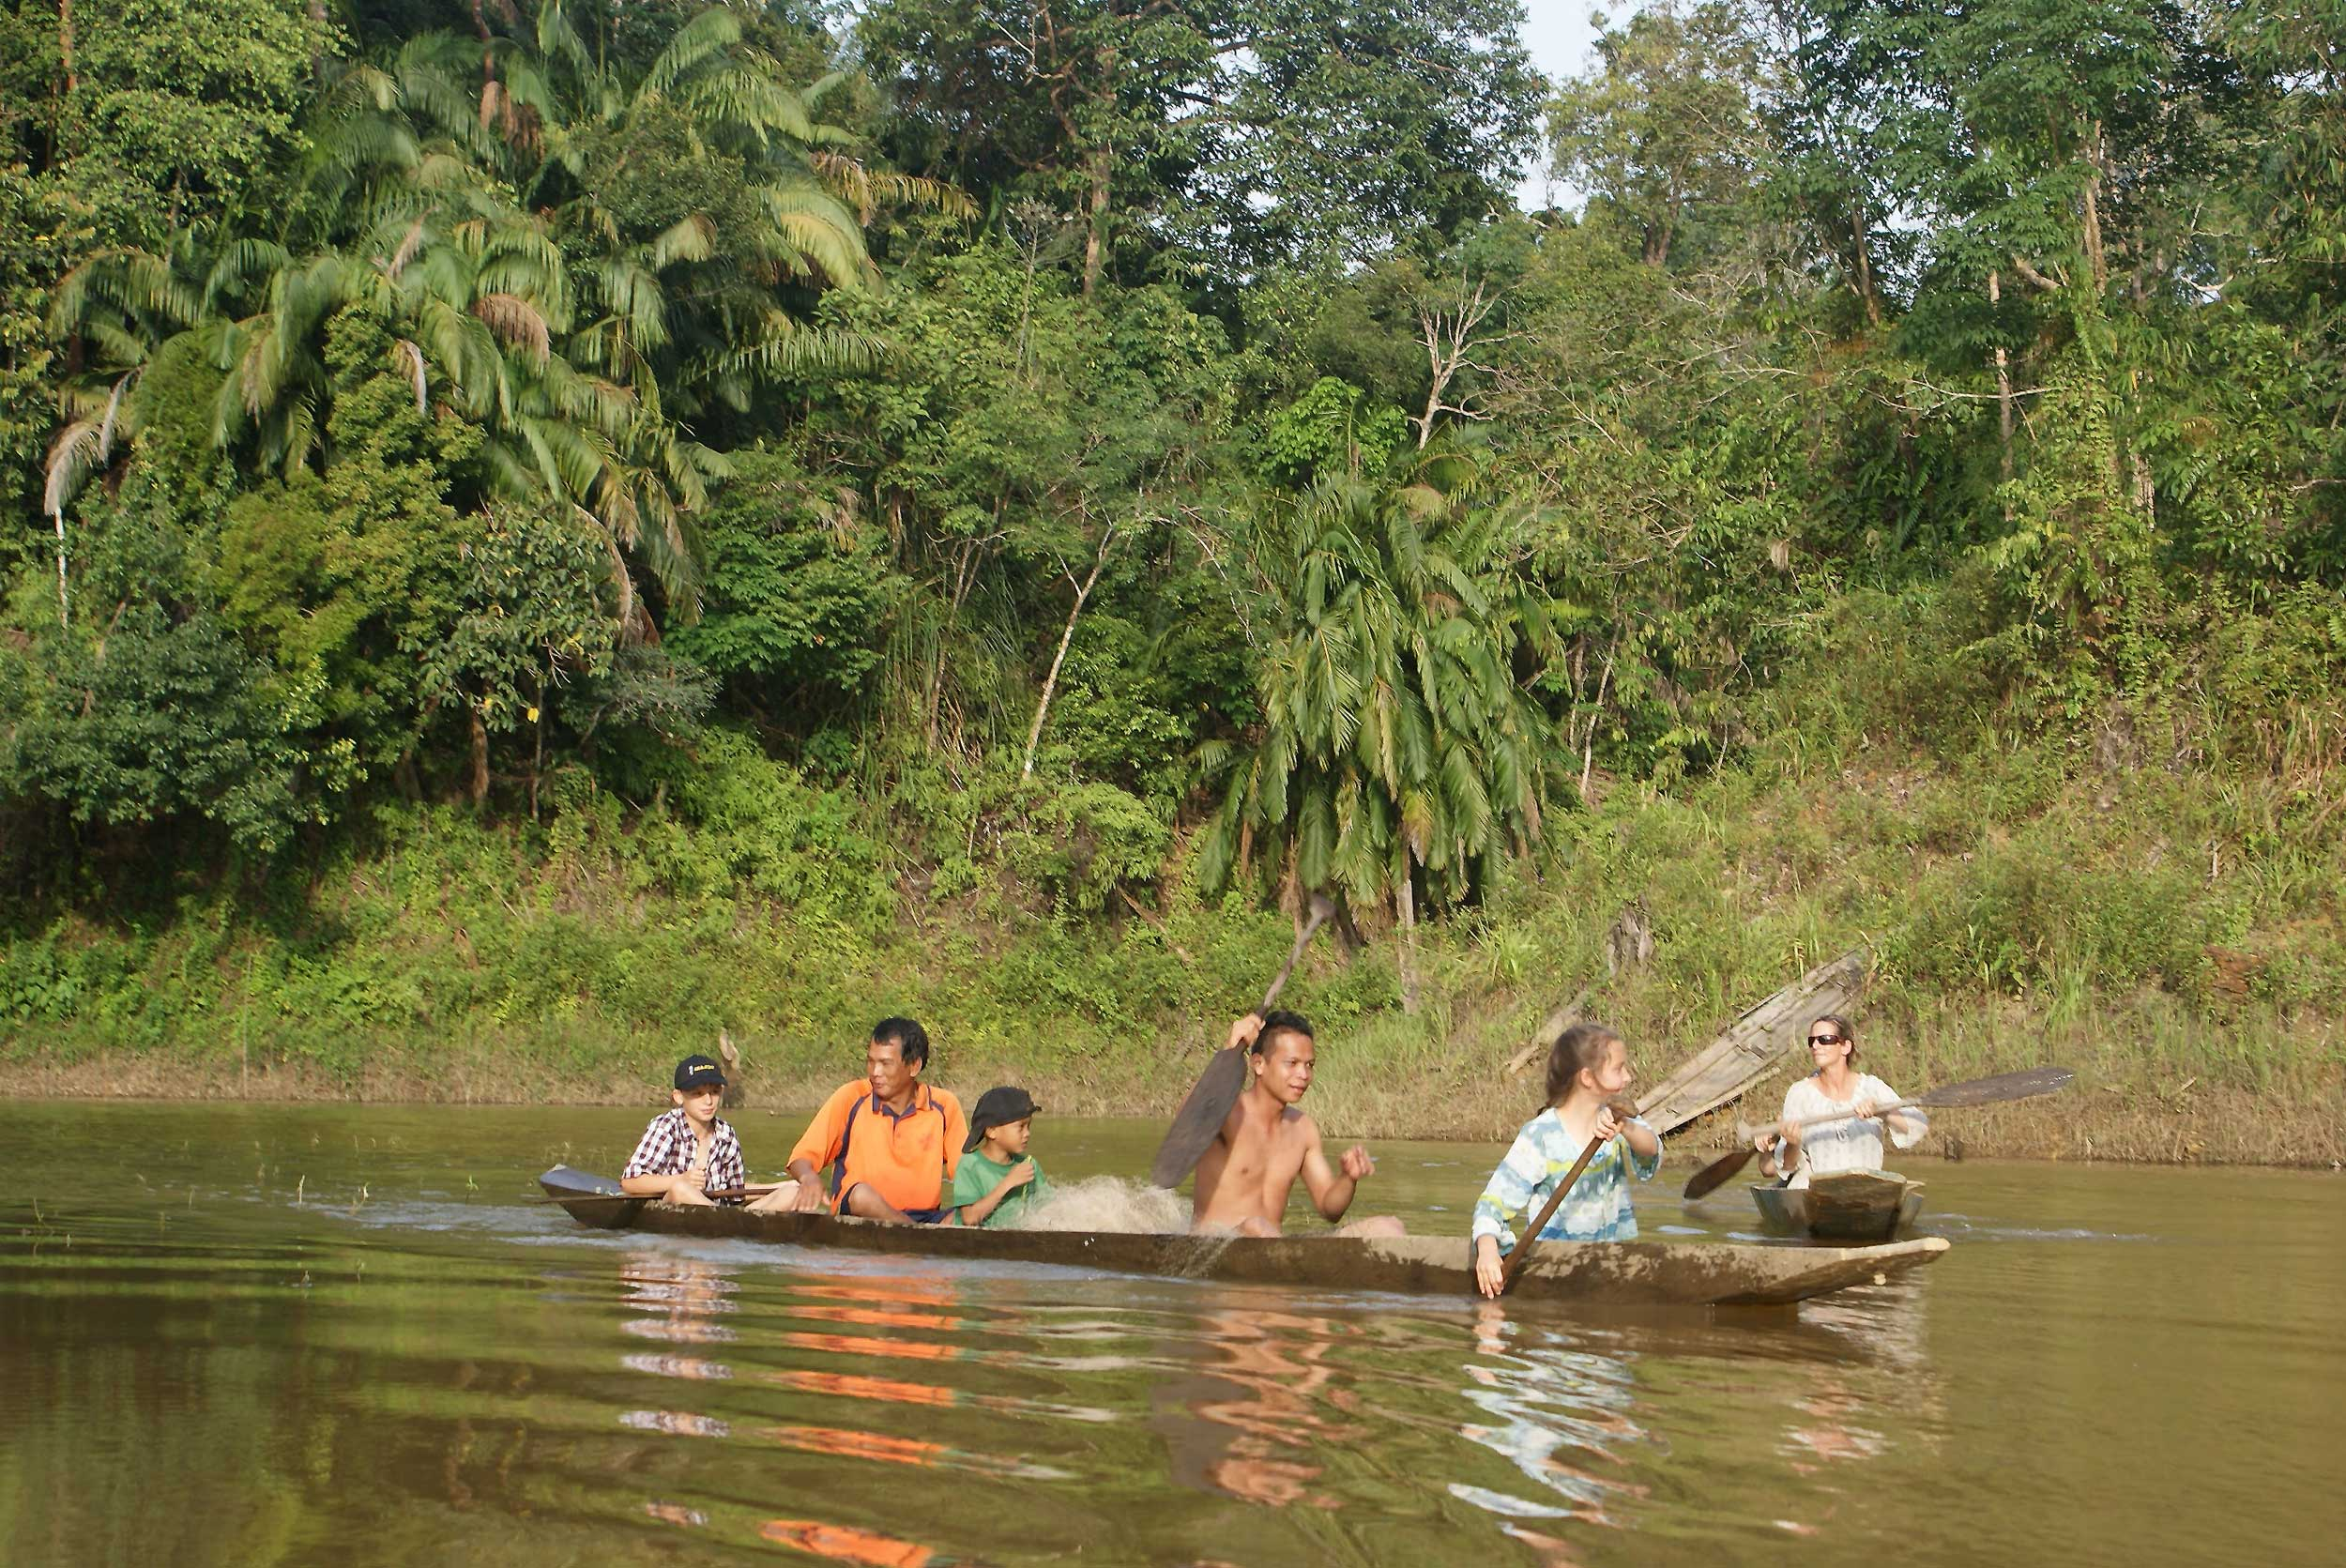 Three children and two adults rowing in a wooden dugout canoe on a river in Borneo